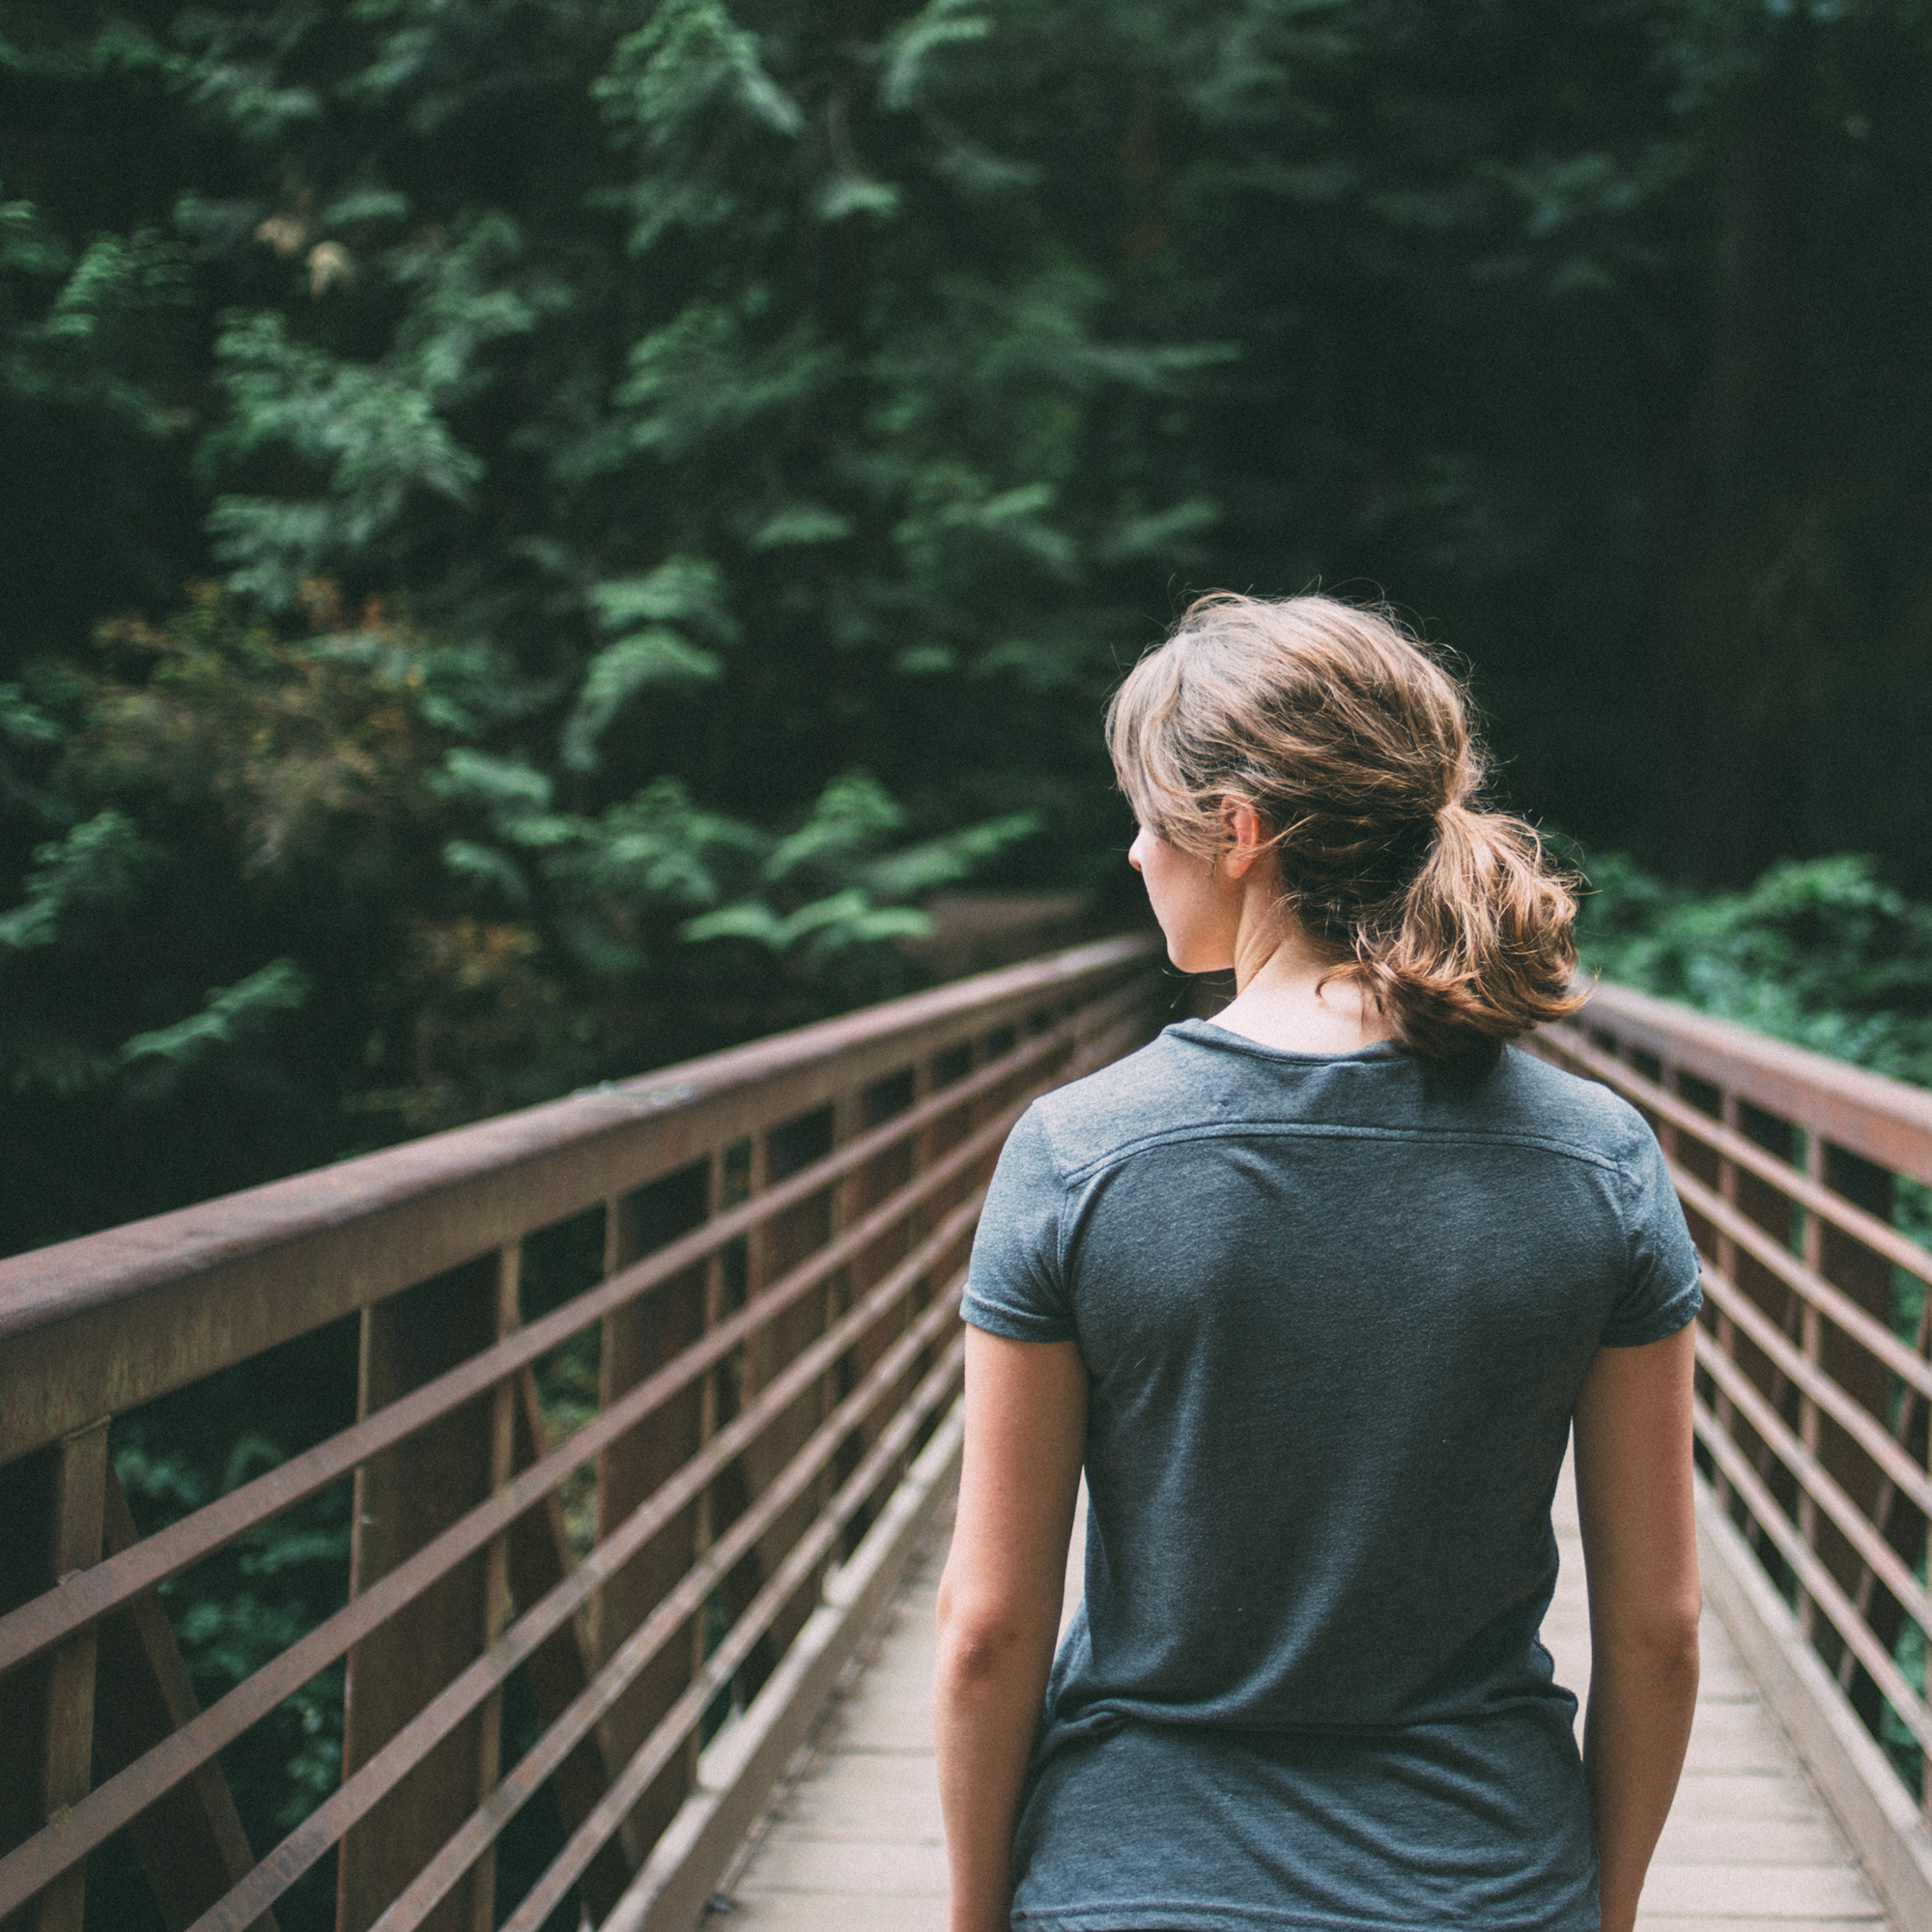 woman-on-bridge-jake-melara-30679-unsplash-crop.jpg